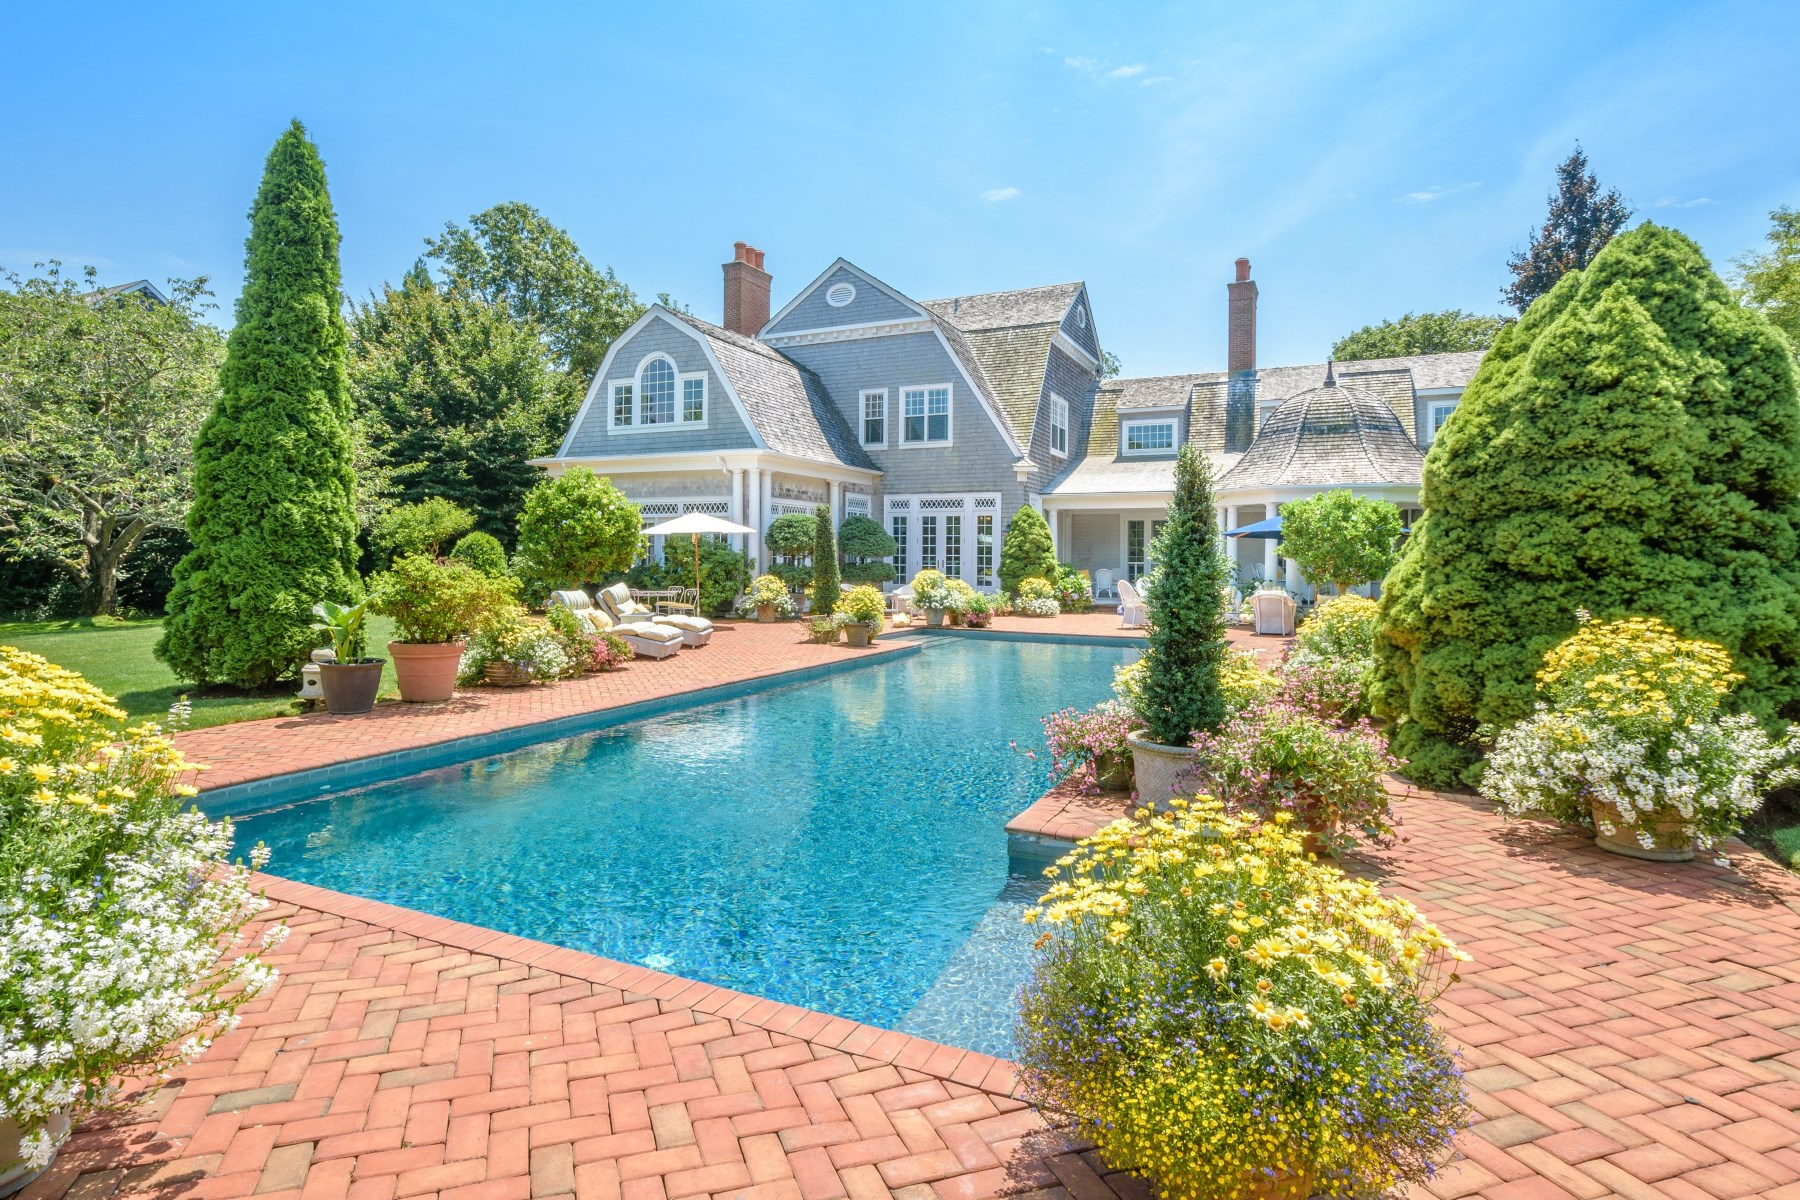 Single Family Home for Sale at Legendary Gin Lane 237 Gin Lane Southampton Estate Section, Southampton, New York, 11968 United States